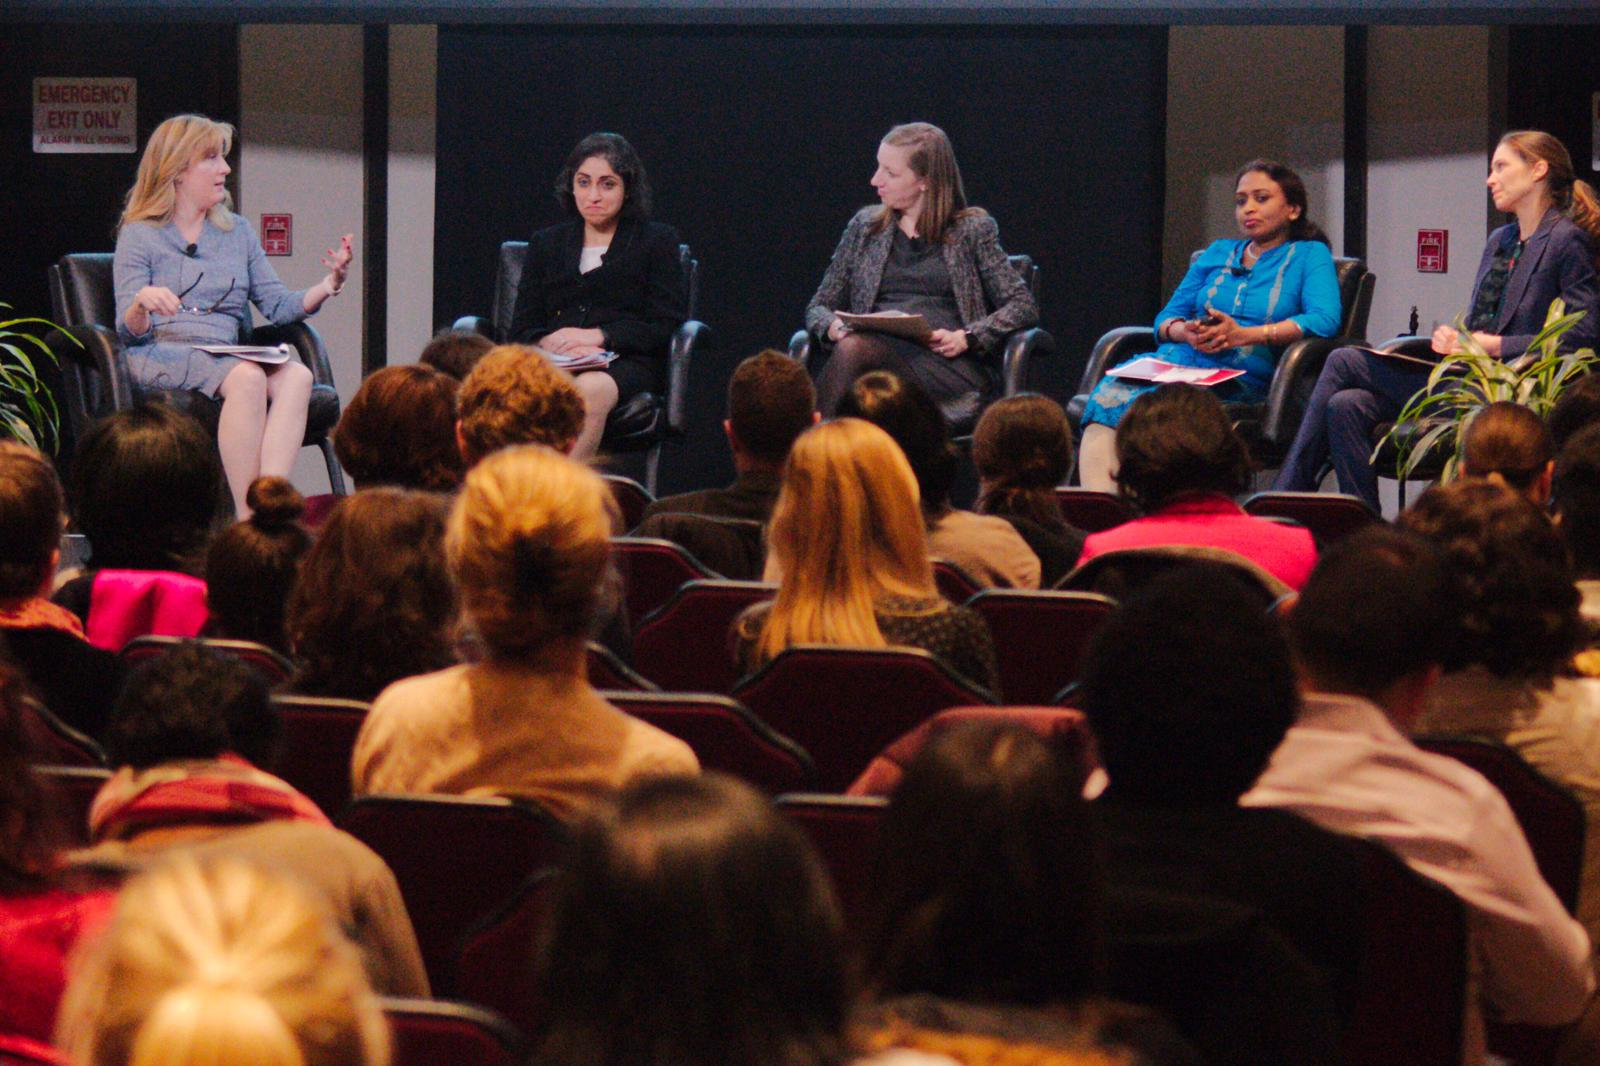 Women leaders in fintech and financial inclusion spoke at FINCA Impact Finance's International Women's Day event.